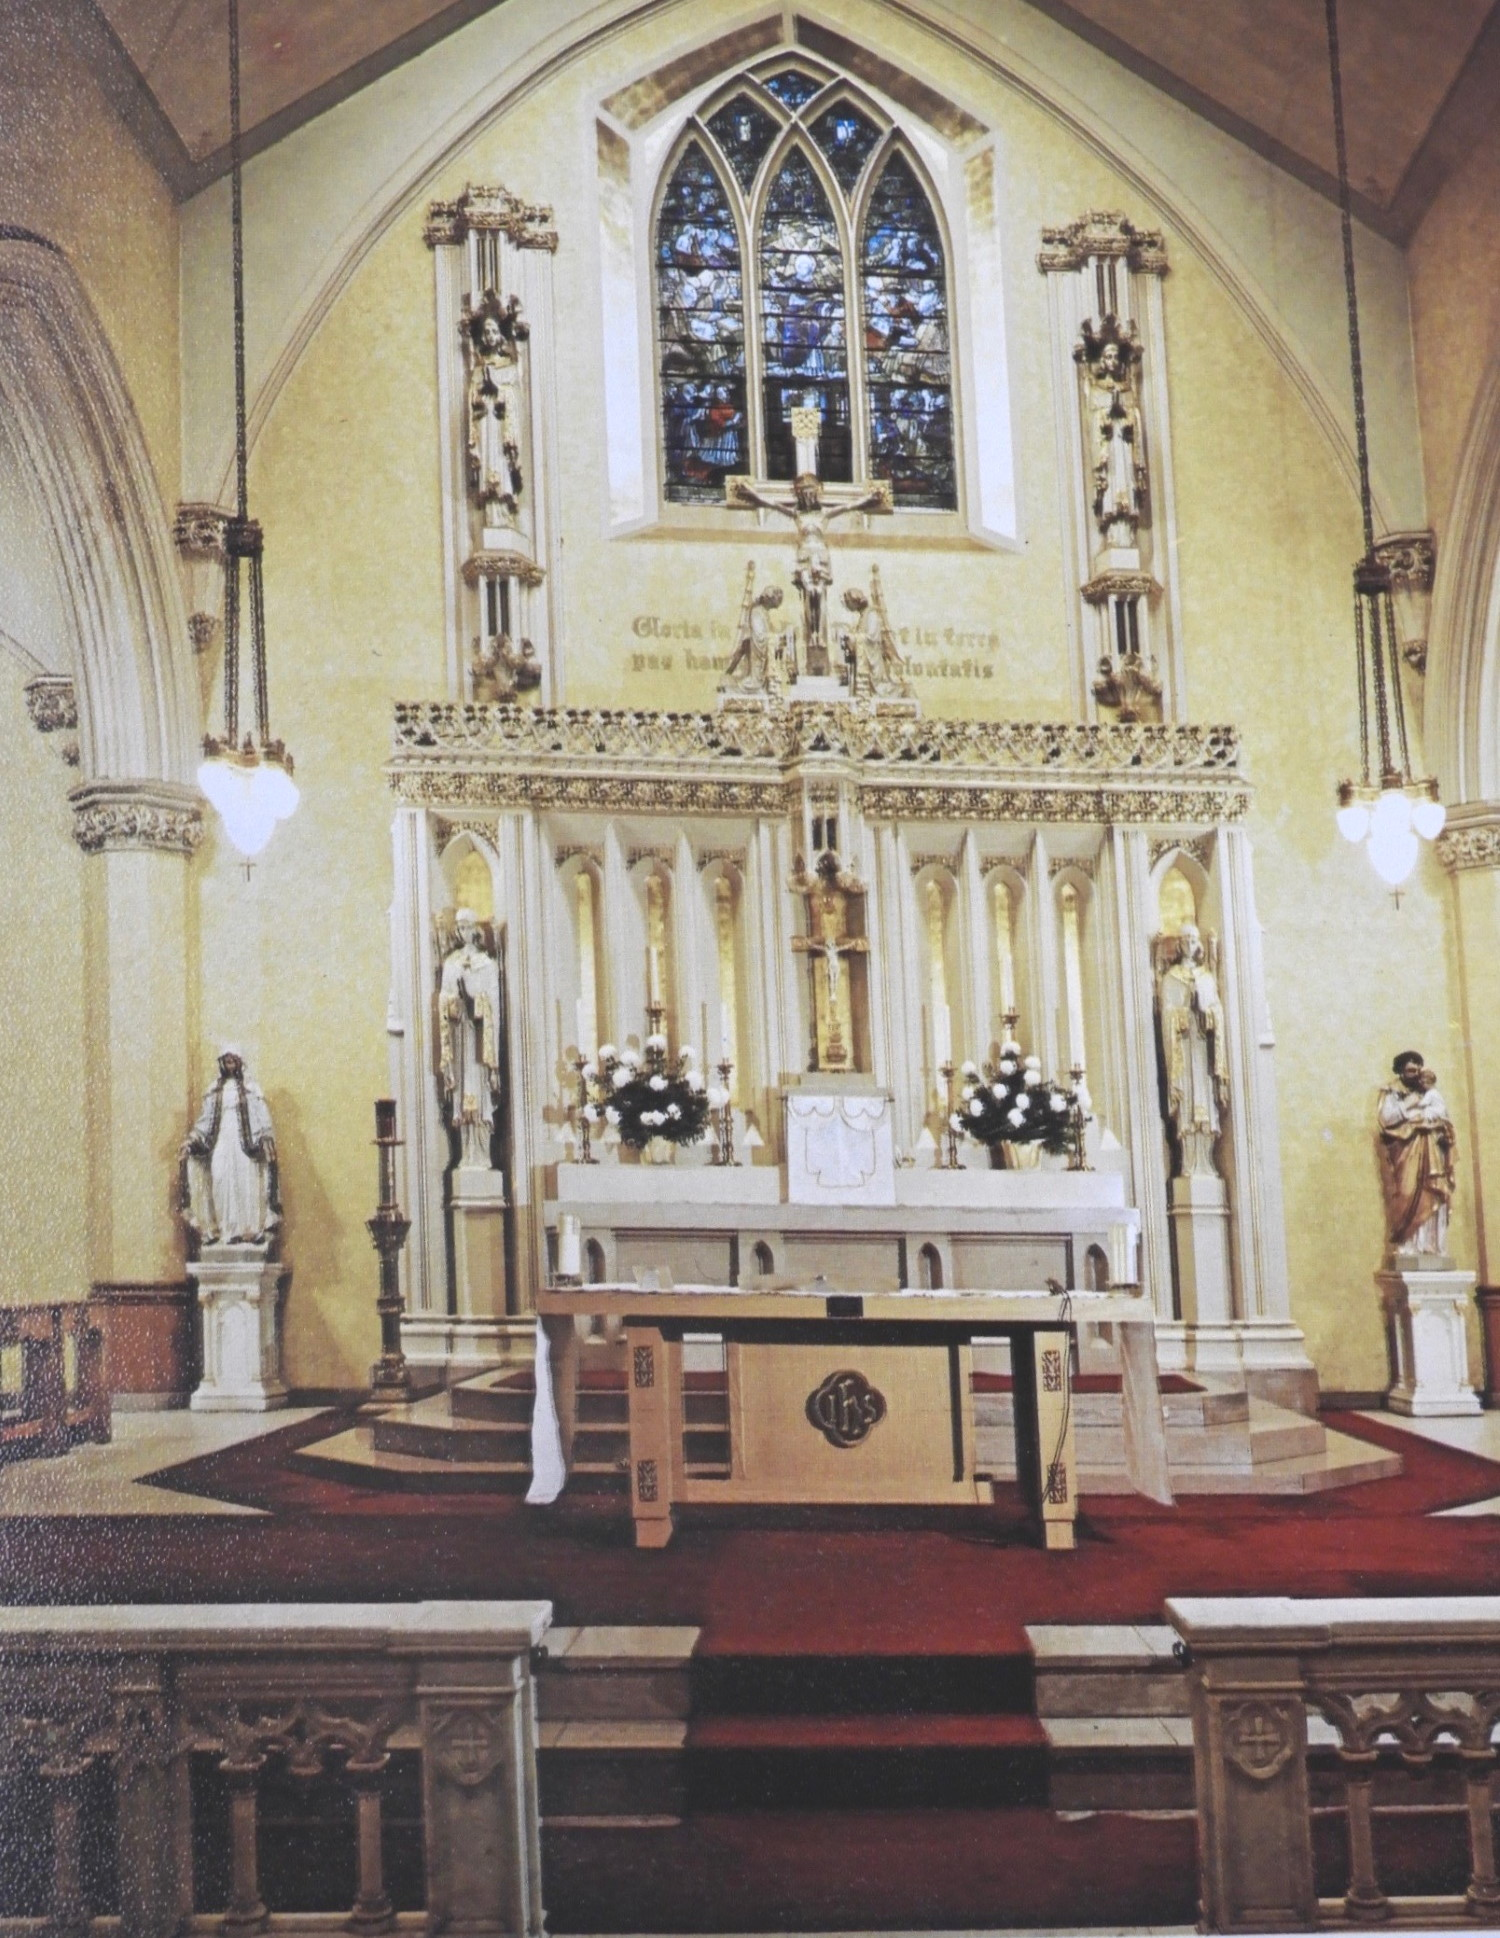 Reredos, altar, rail, and St. Thomas Aquinas window in 1969. From  Centennial of St. Thomas Aquinas Church , 1969. Archives of the Archdiocese of Boston.